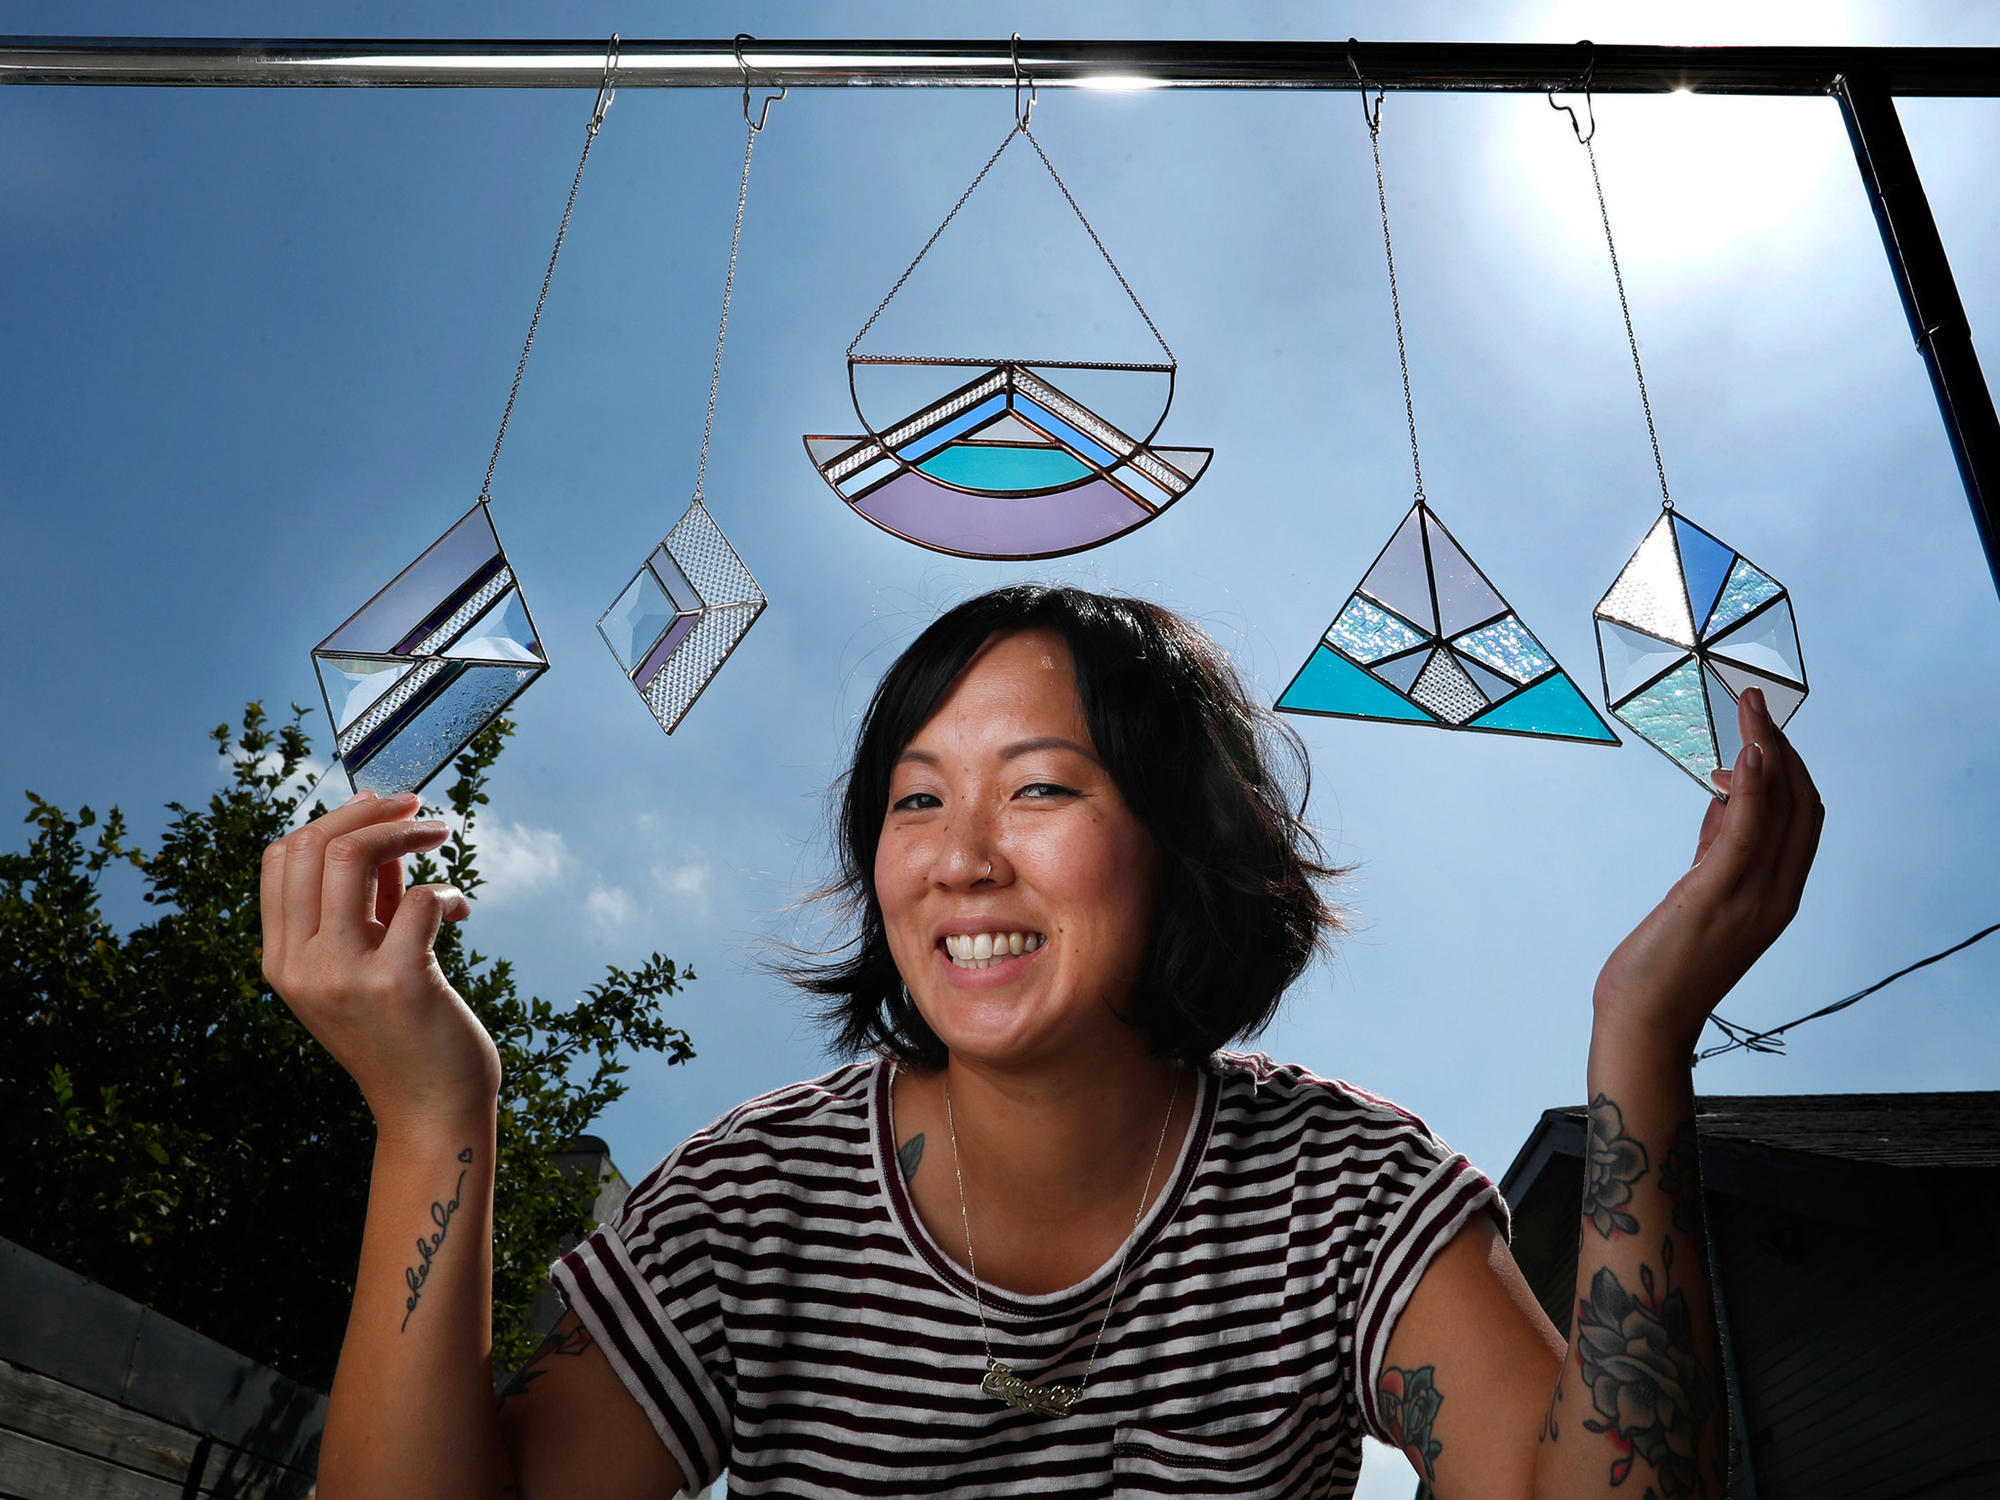 Makers: For stained glass artist Janel Foo, its all about the colors